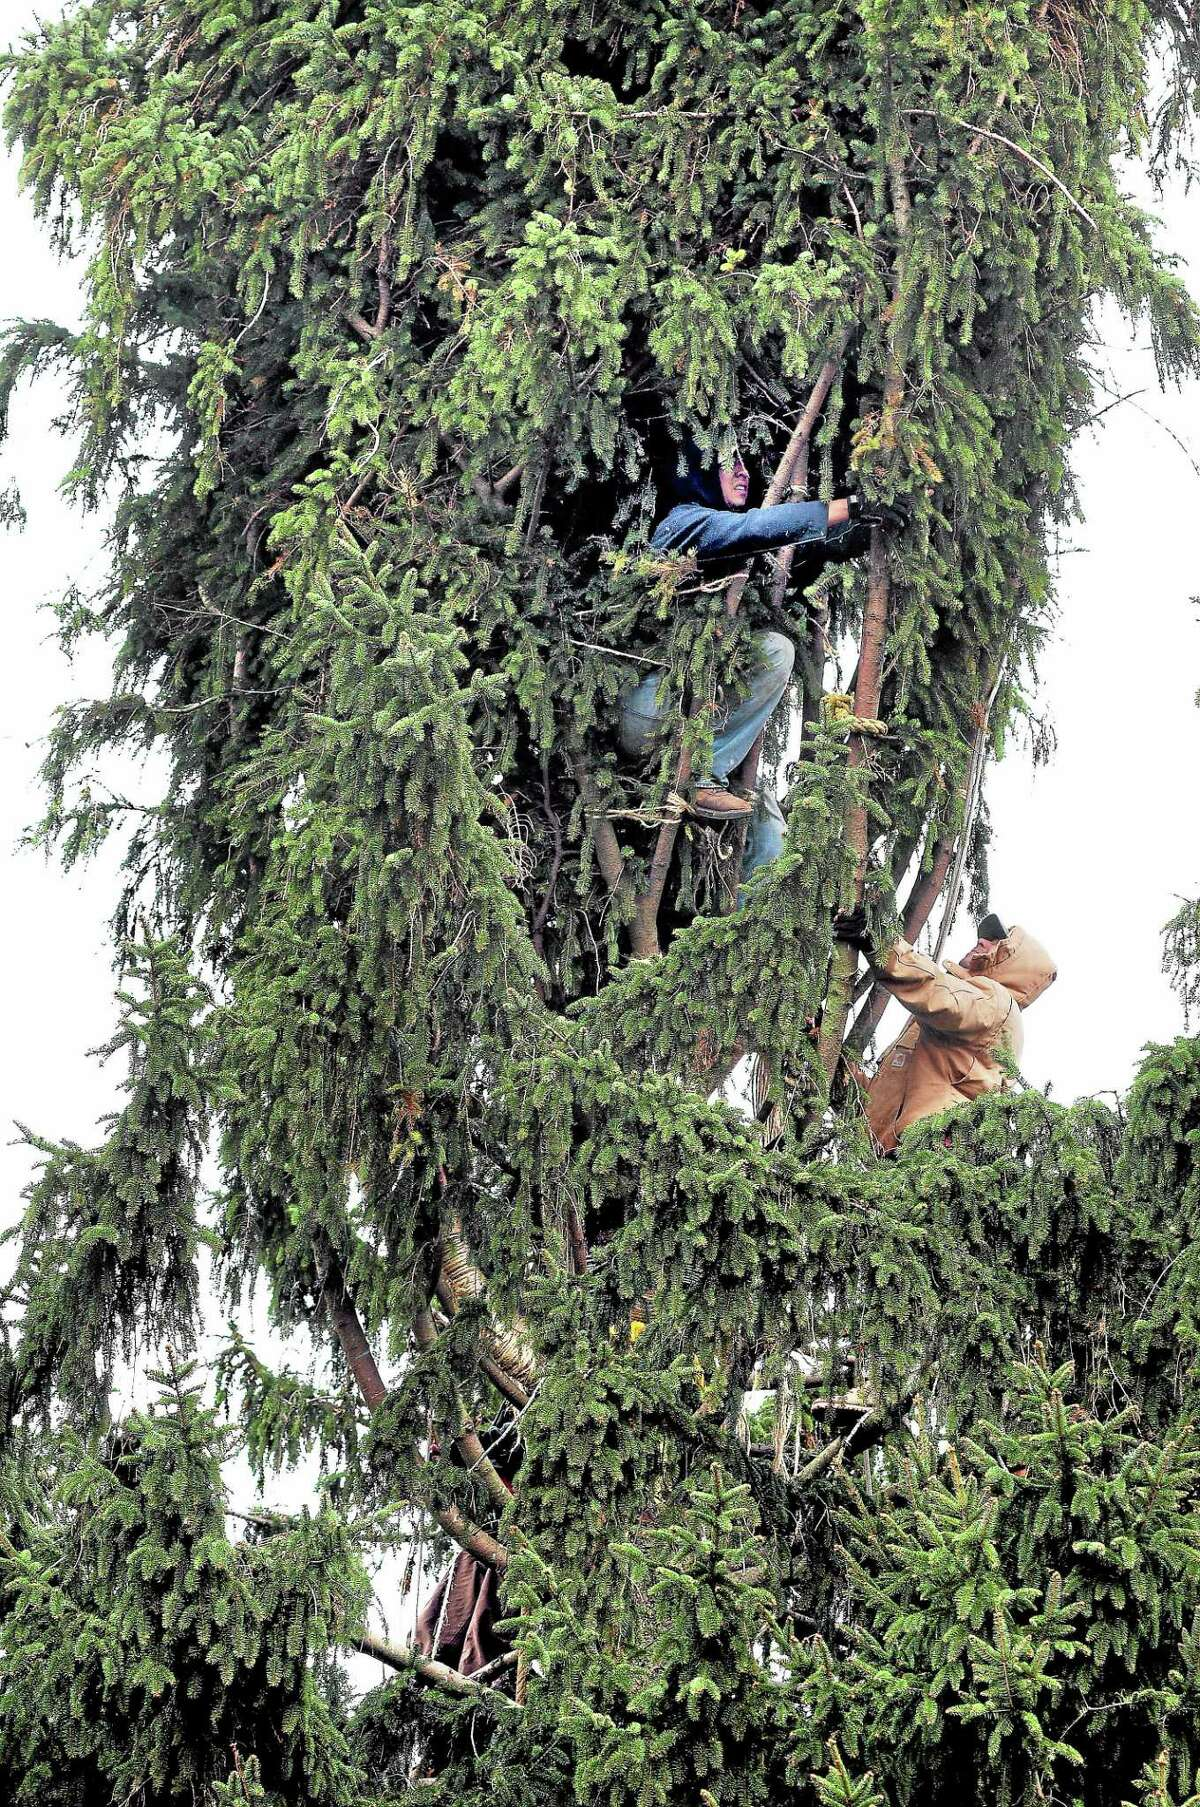 A crew ties up the branches of an 80-foot Norway spruce on Kazo Drive in Shelton in preparation for its trip to Rockefeller Center in New York City.